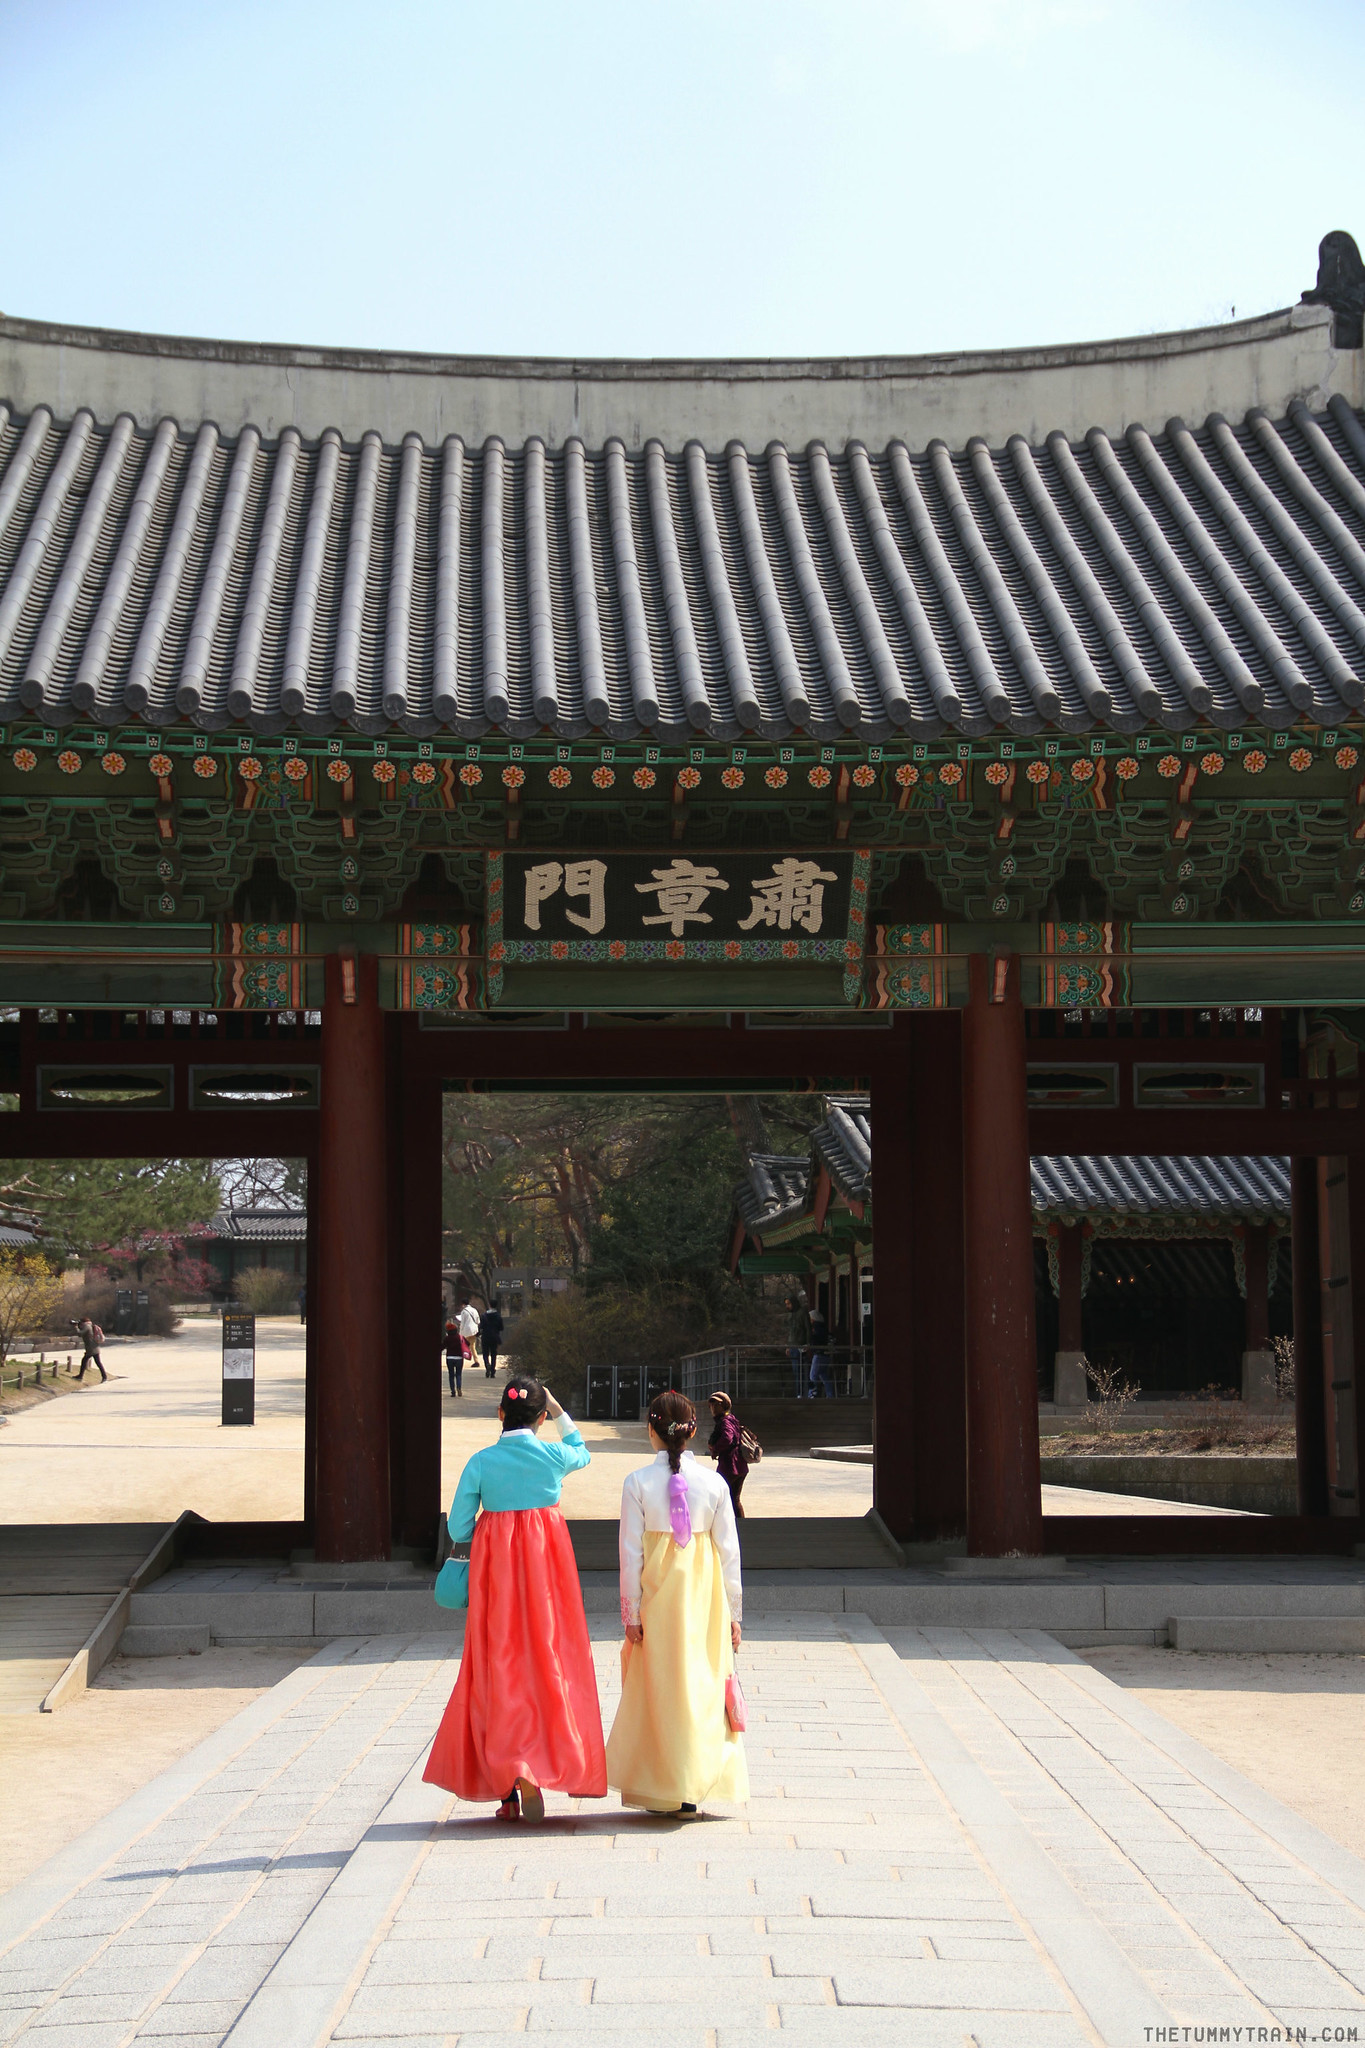 32715771743 f1ebc9f1b3 k - Seoul-ful Spring 2016: Greeting the first blooms at Changdeokgung Palace